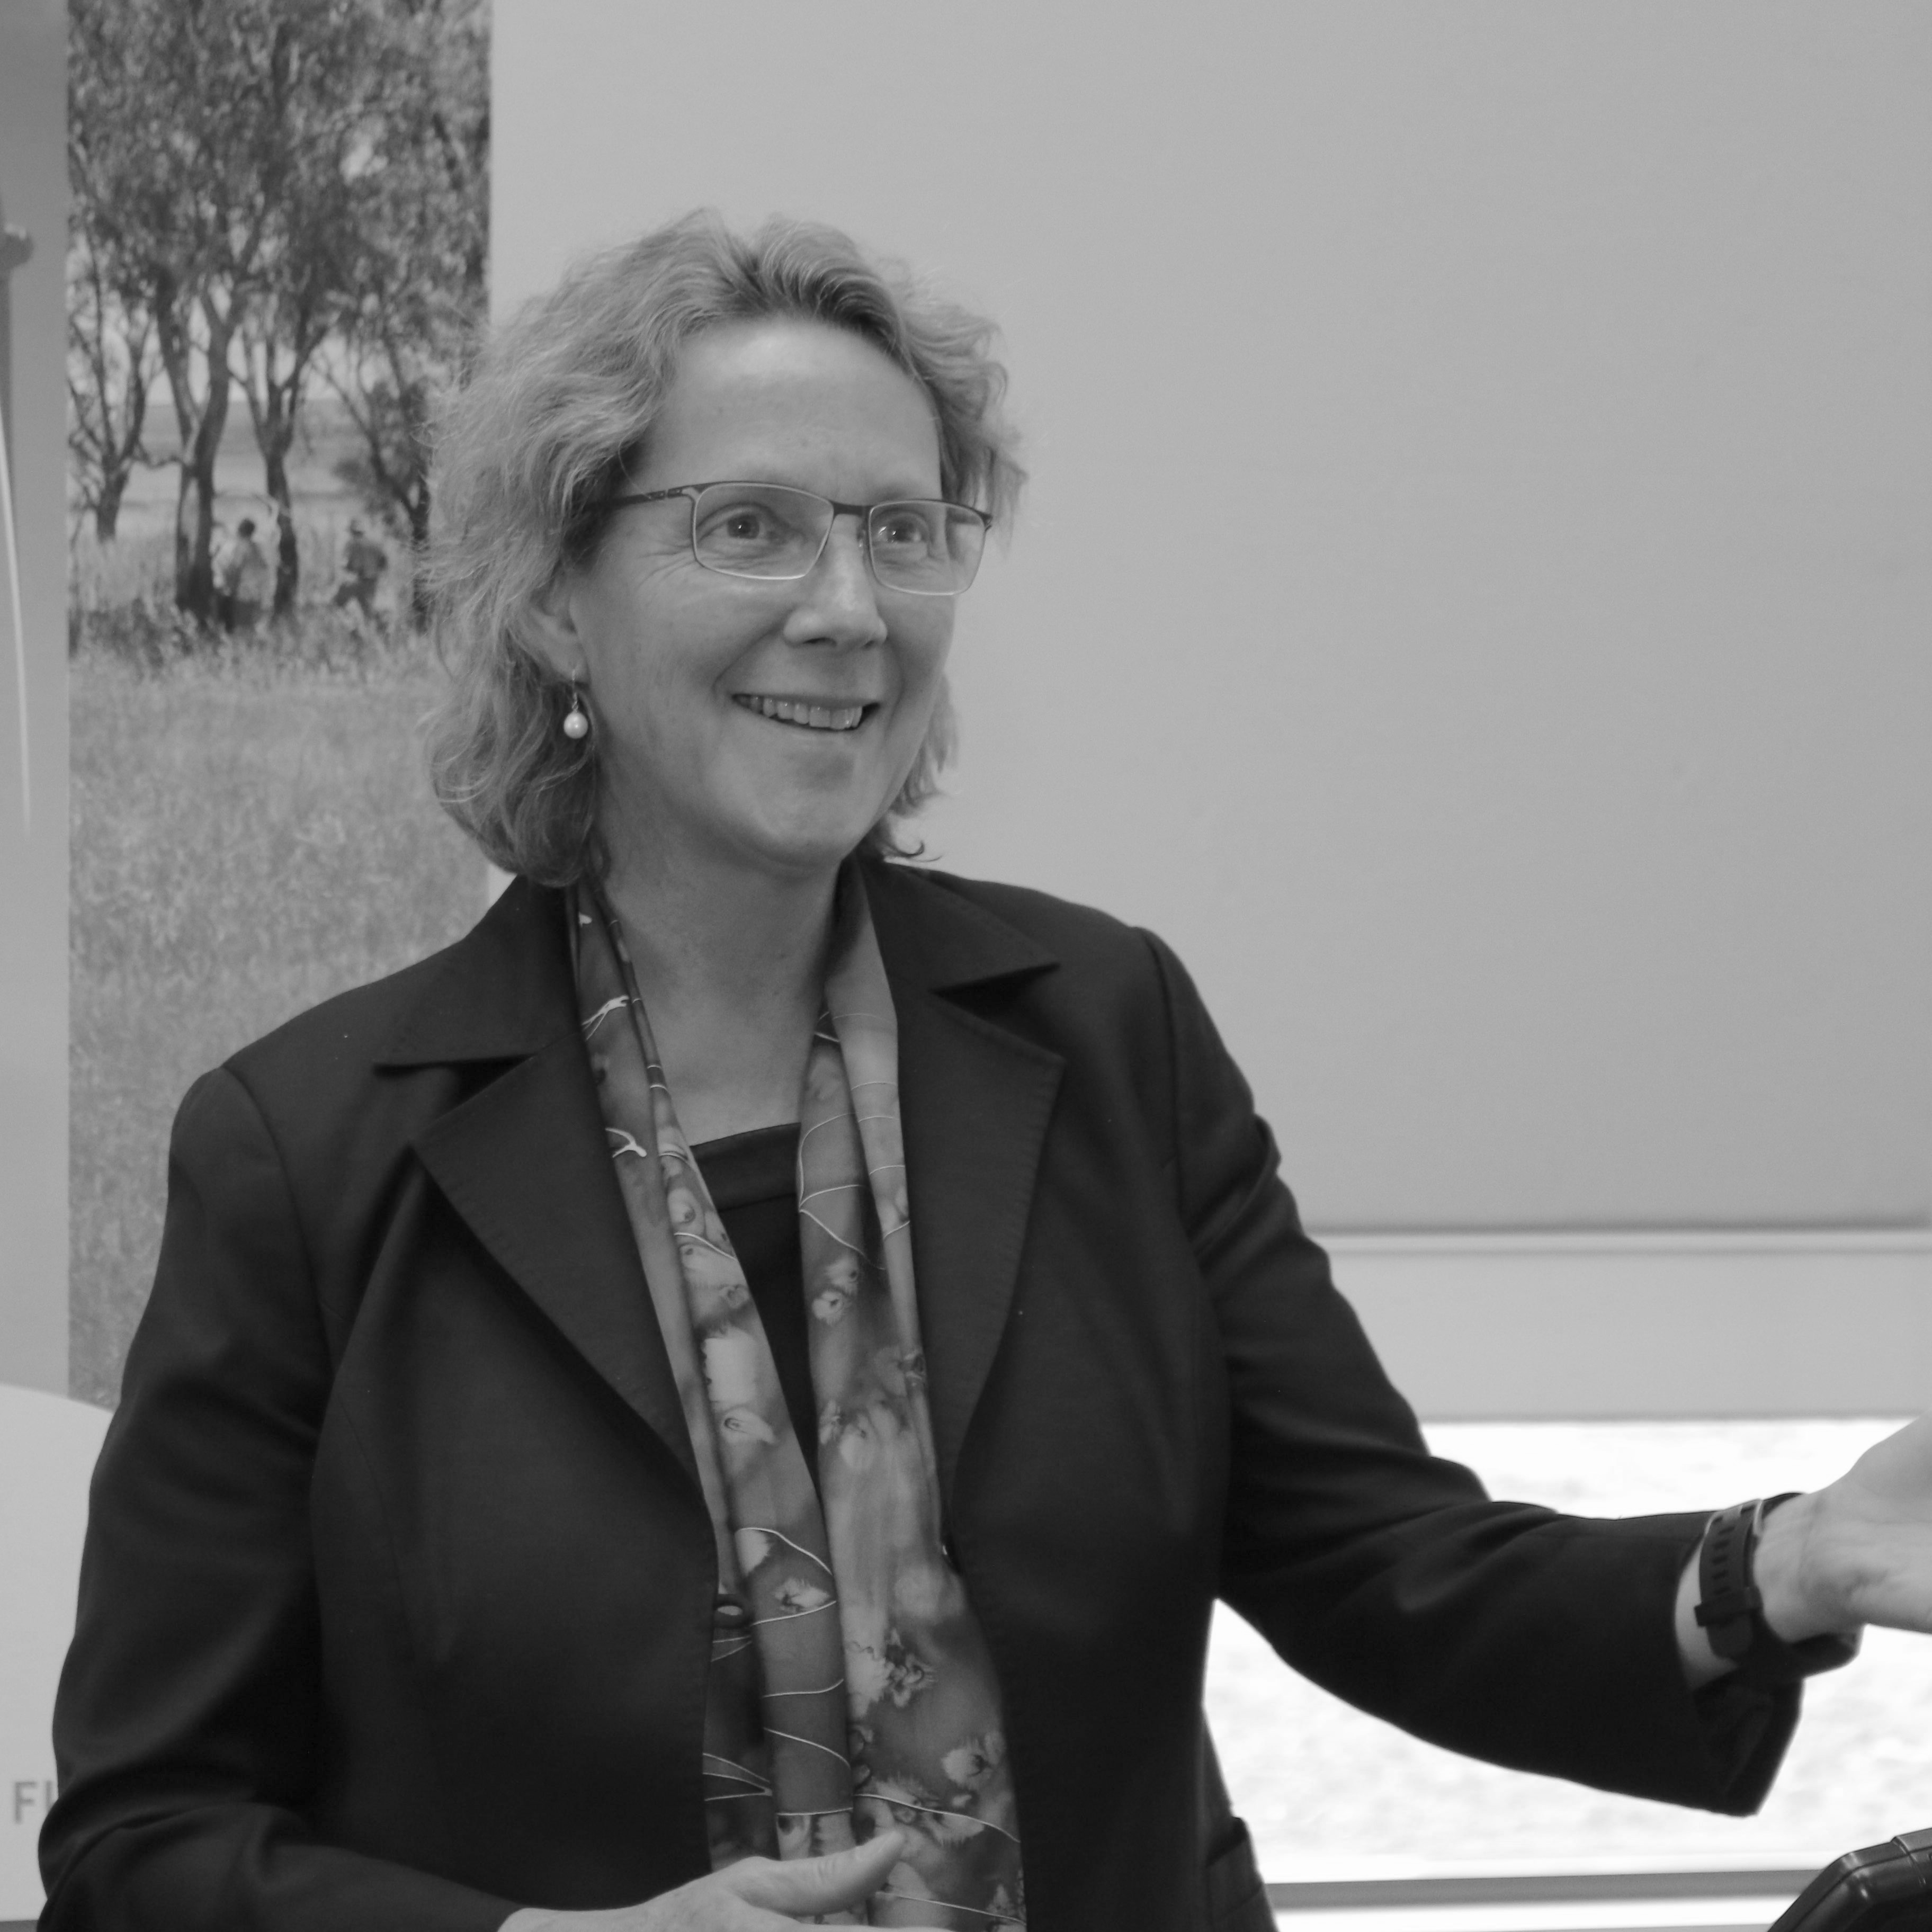 dae1c3f5c65 Professor Barbara Norman is the Foundation Chair of Urban and Regional  Planning and Director of Canberra Urban and Regional Futures (CURF) at the  University ...